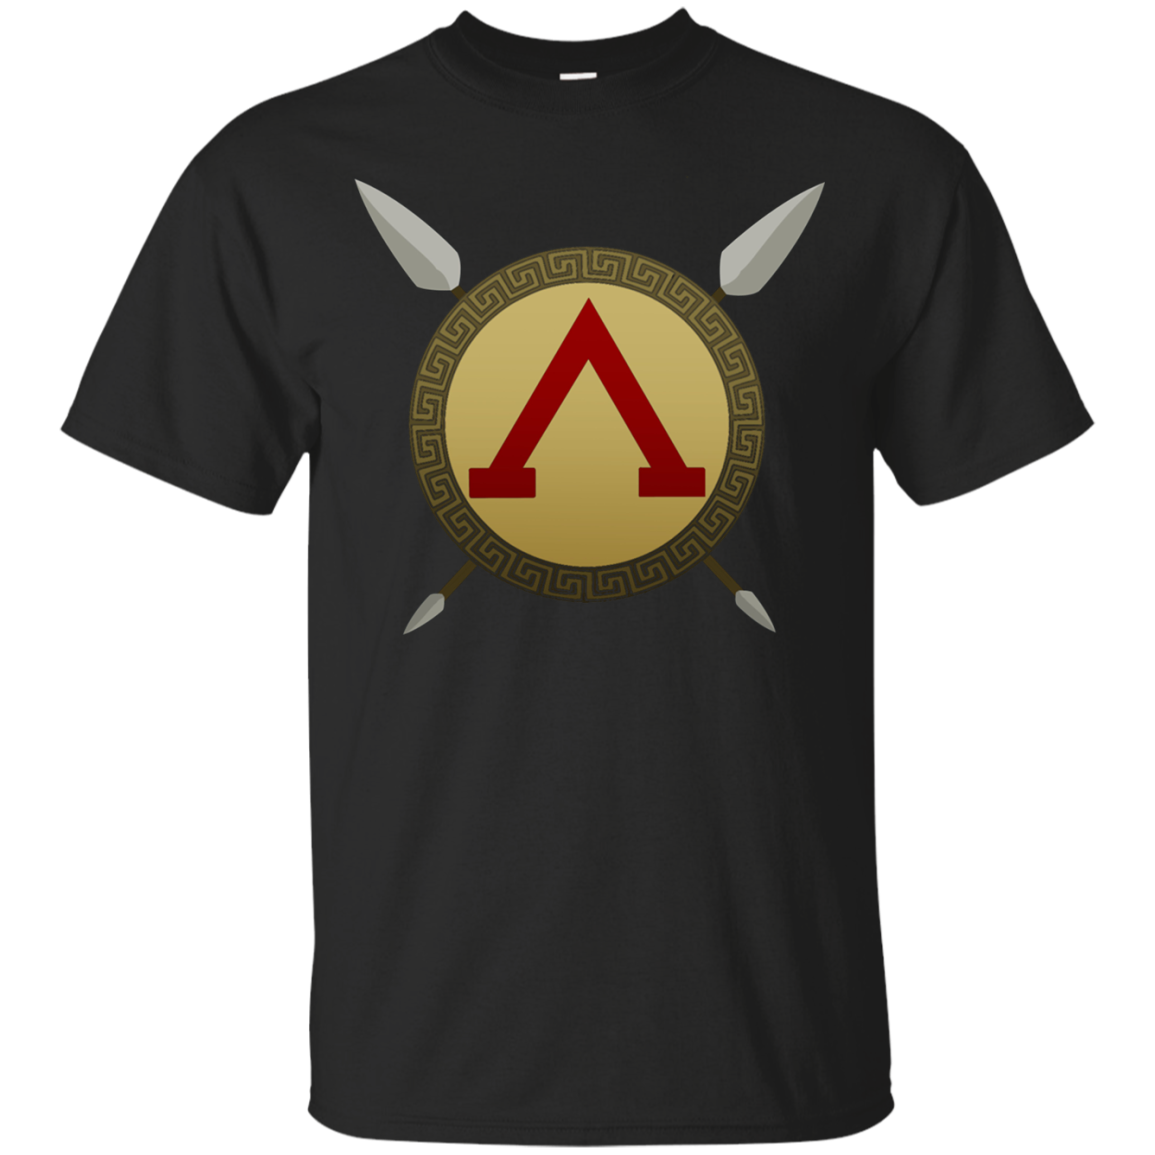 Spartan Warrior Shield and Spear T-shirt